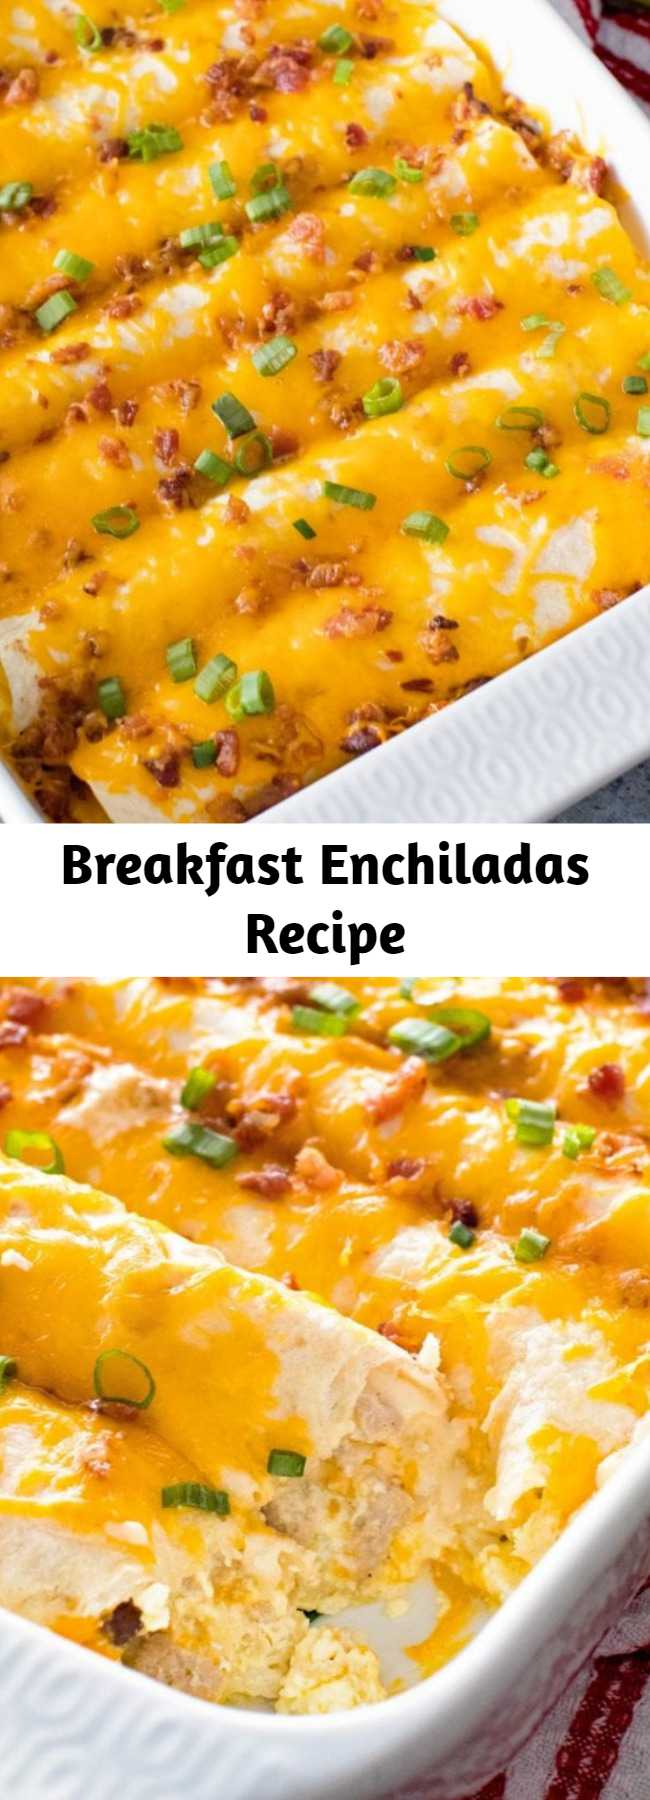 Breakfast Enchiladas Recipe - Tortillas stuffed with Sausage, Eggs,Cheese and Bacon! This is the Perfect Overnight Breakfast Casserole Recipe! #breakfast #enchiladas